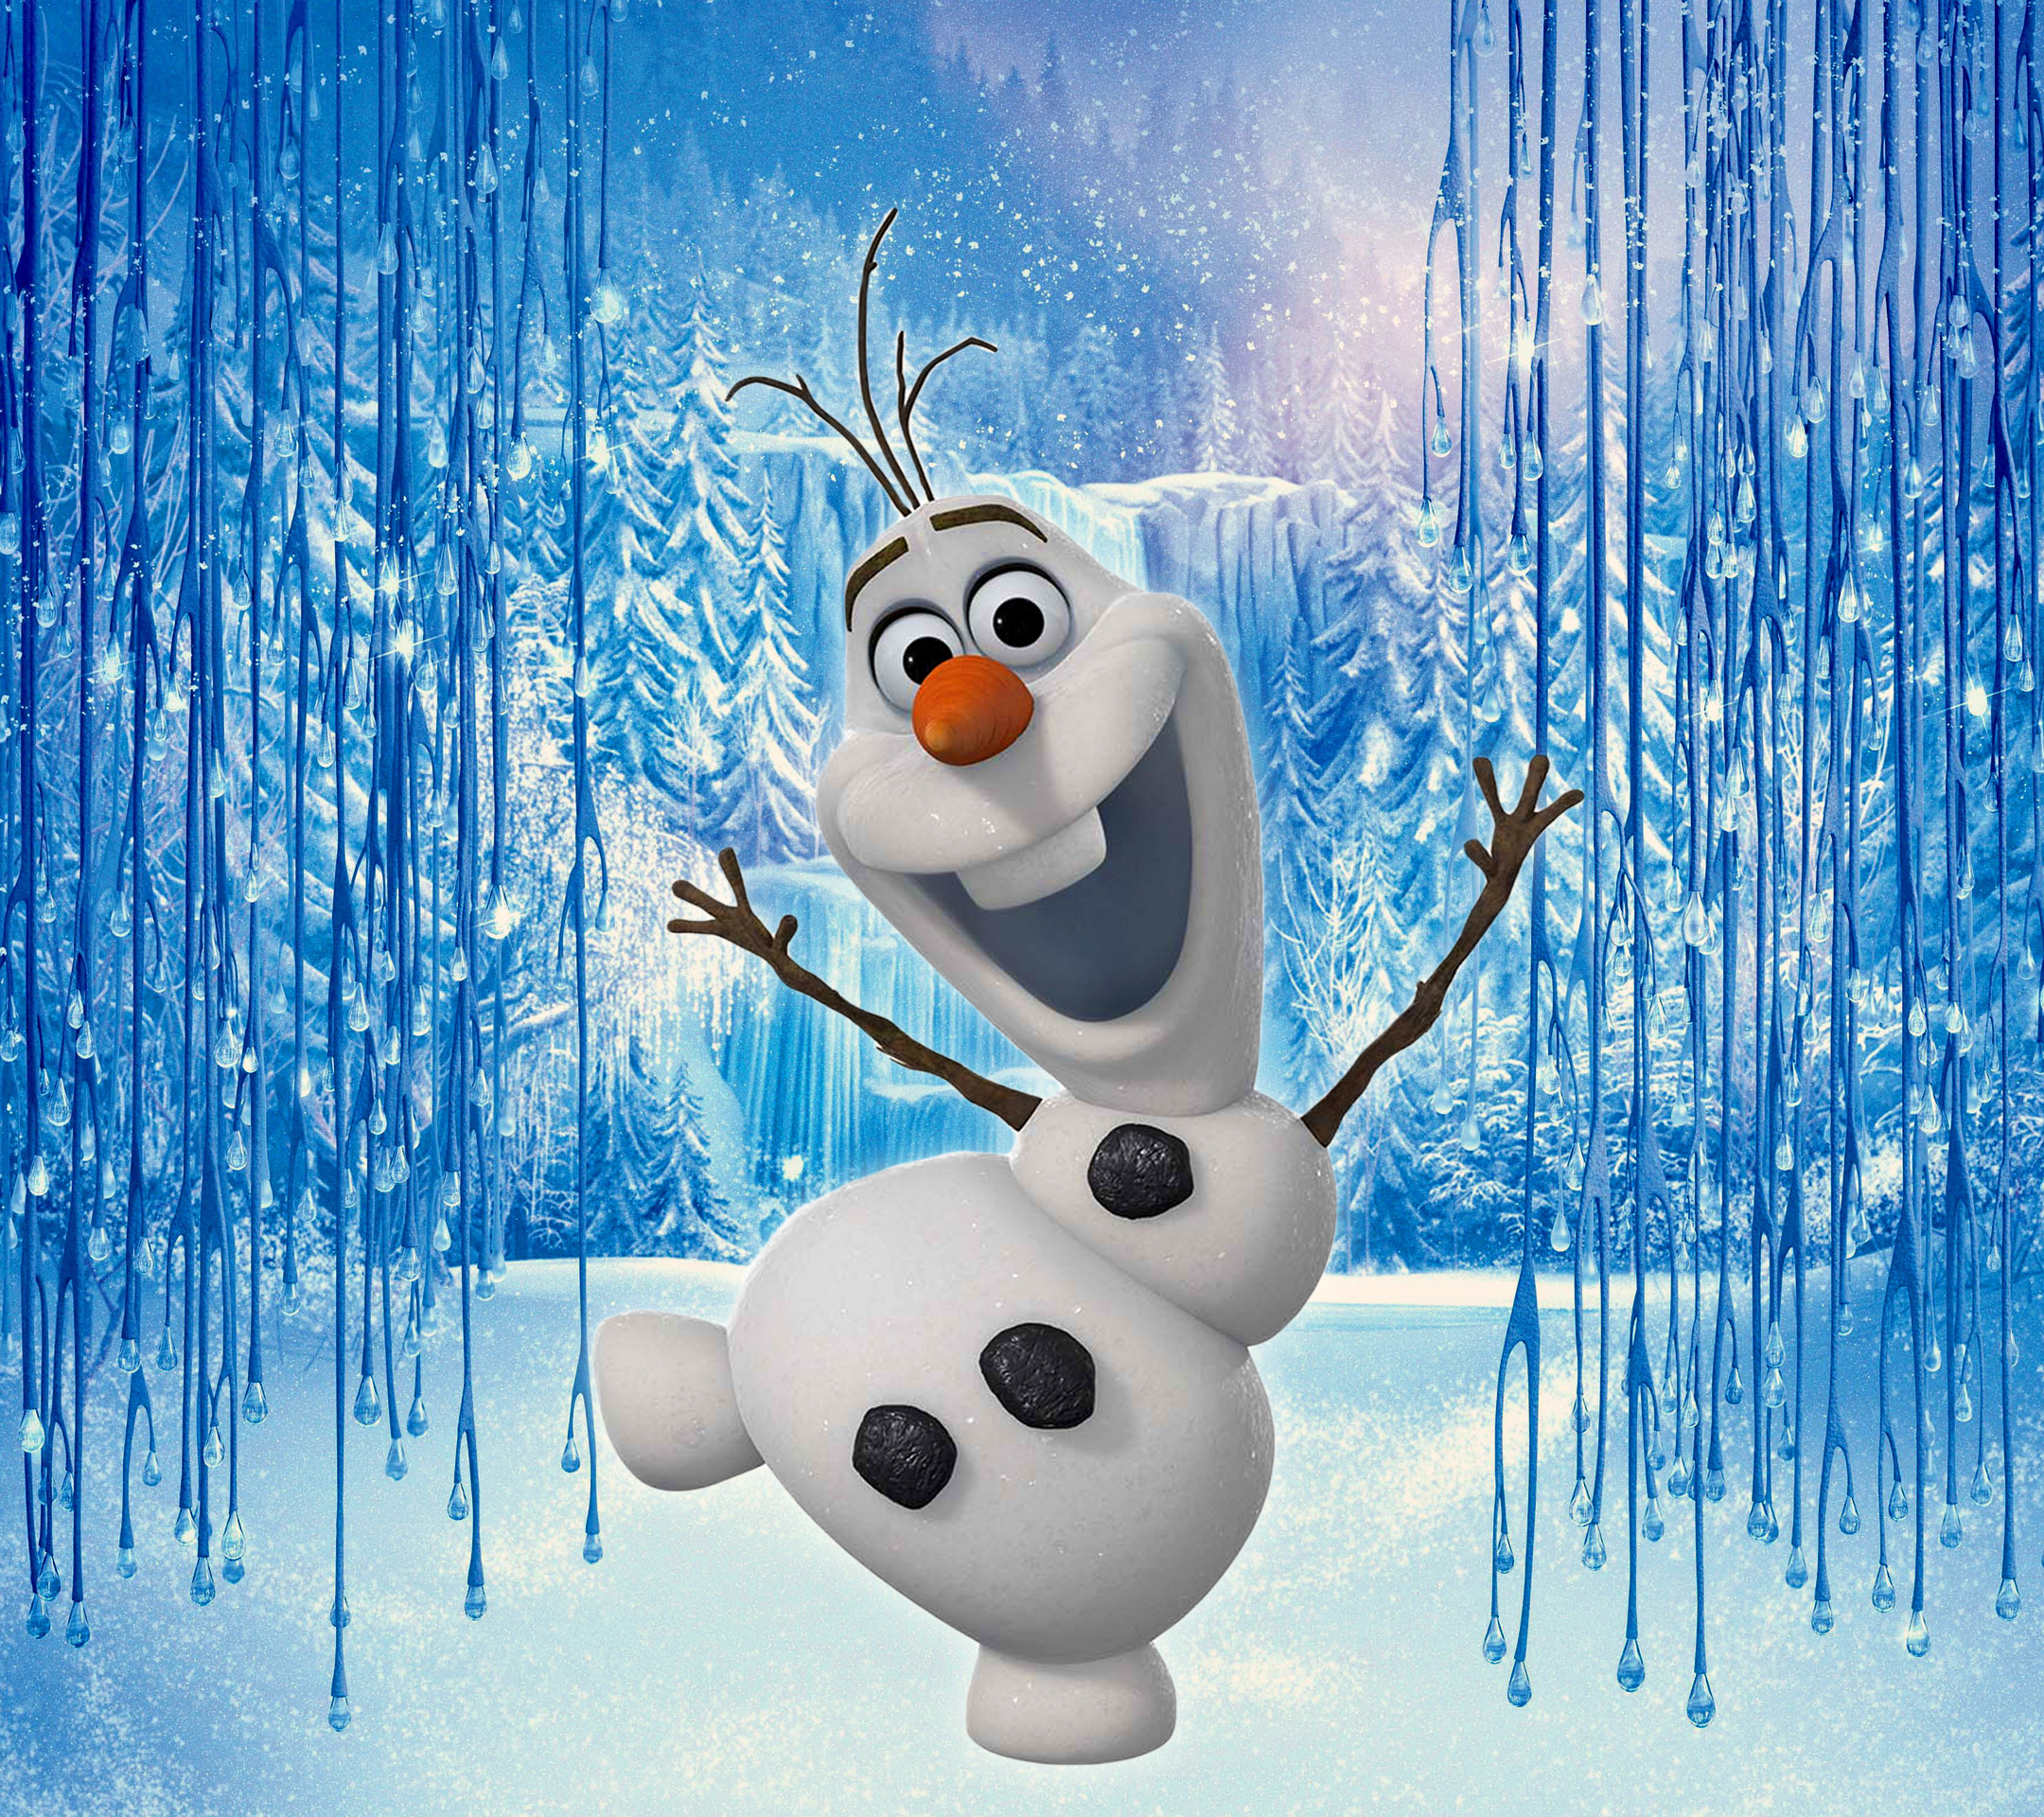 Frozen Quotes Olaf 1080 x 1080 3540Kb Olaf Frozen 2160 x 1920 3431 2160x1920